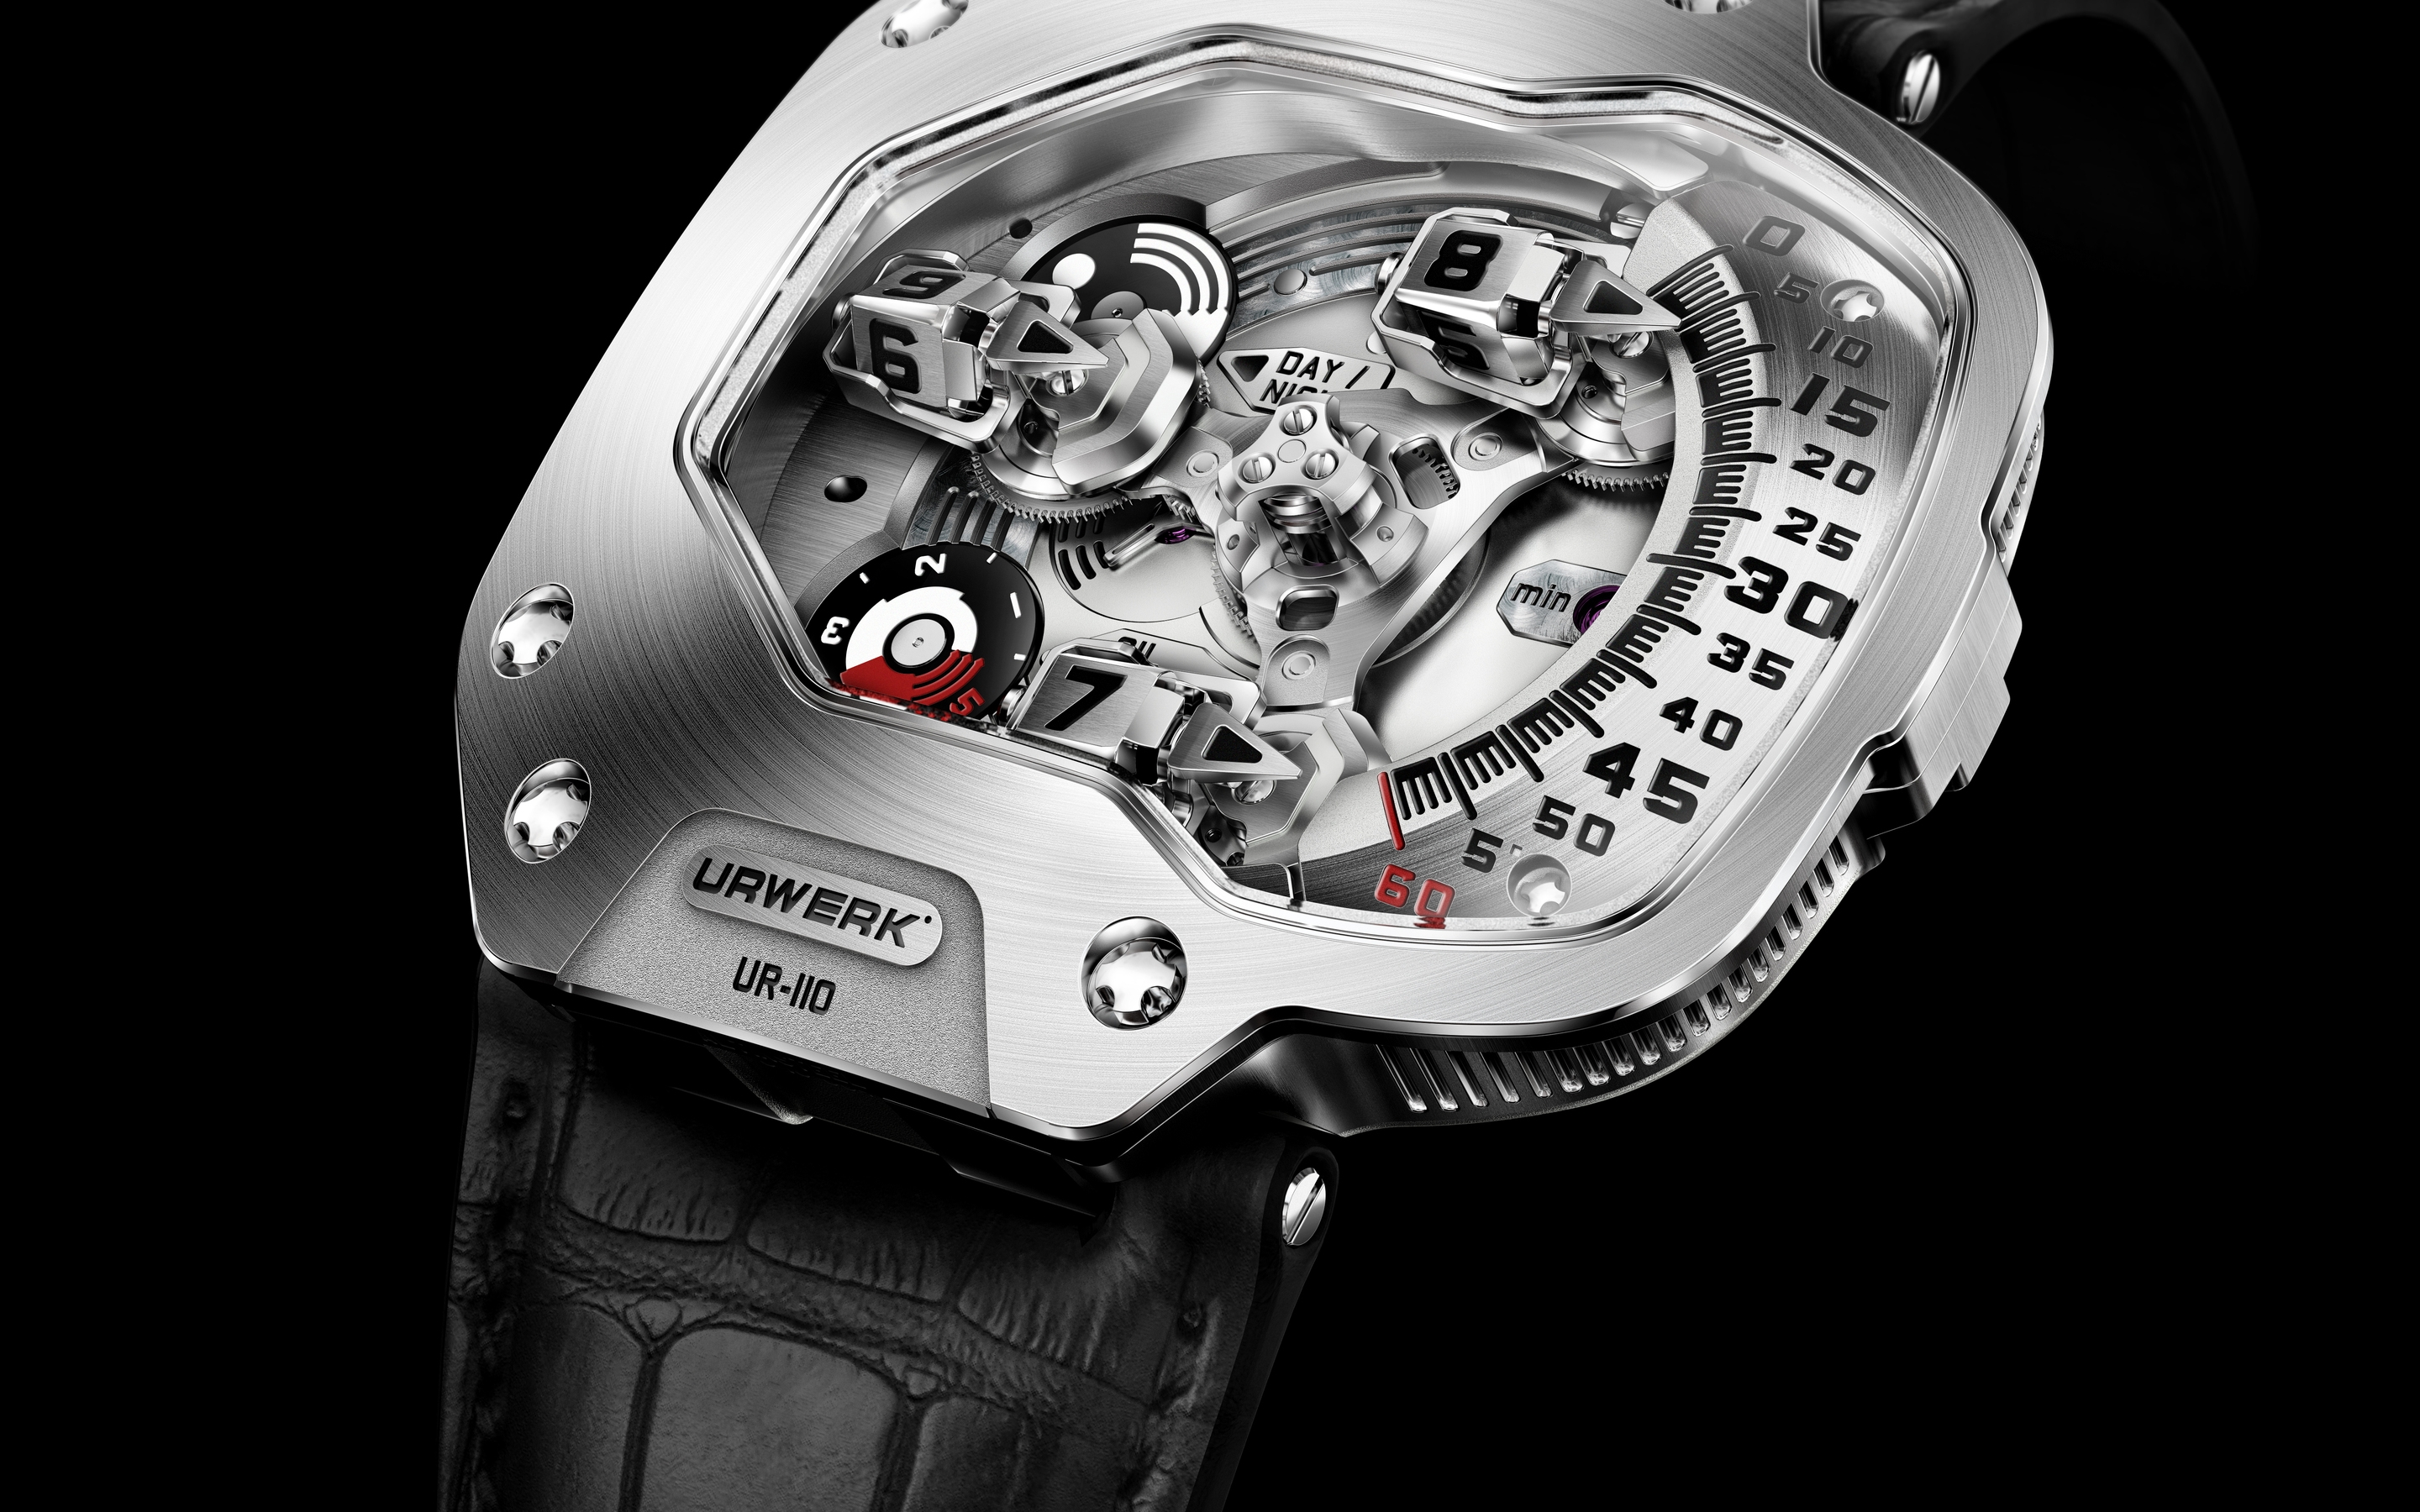 Urwerk UR 110 Watch for 2880 x 1800 Retina Display resolution